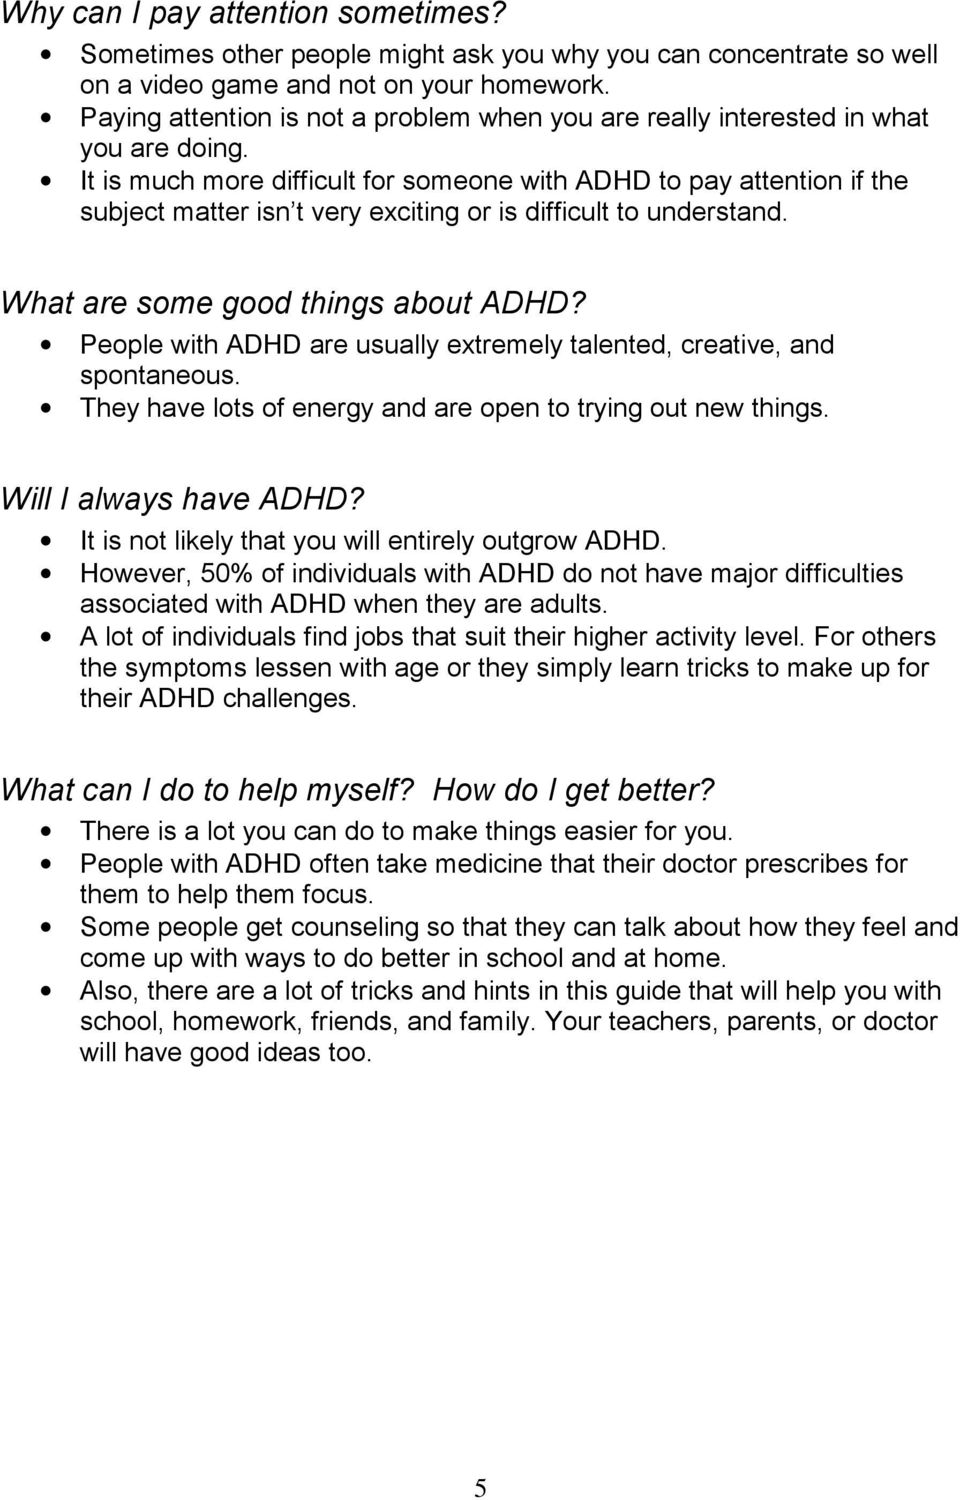 It is much more difficult for someone with ADHD to pay attention if the subject matter isn t very exciting or is difficult to understand. What are some good things about ADHD?